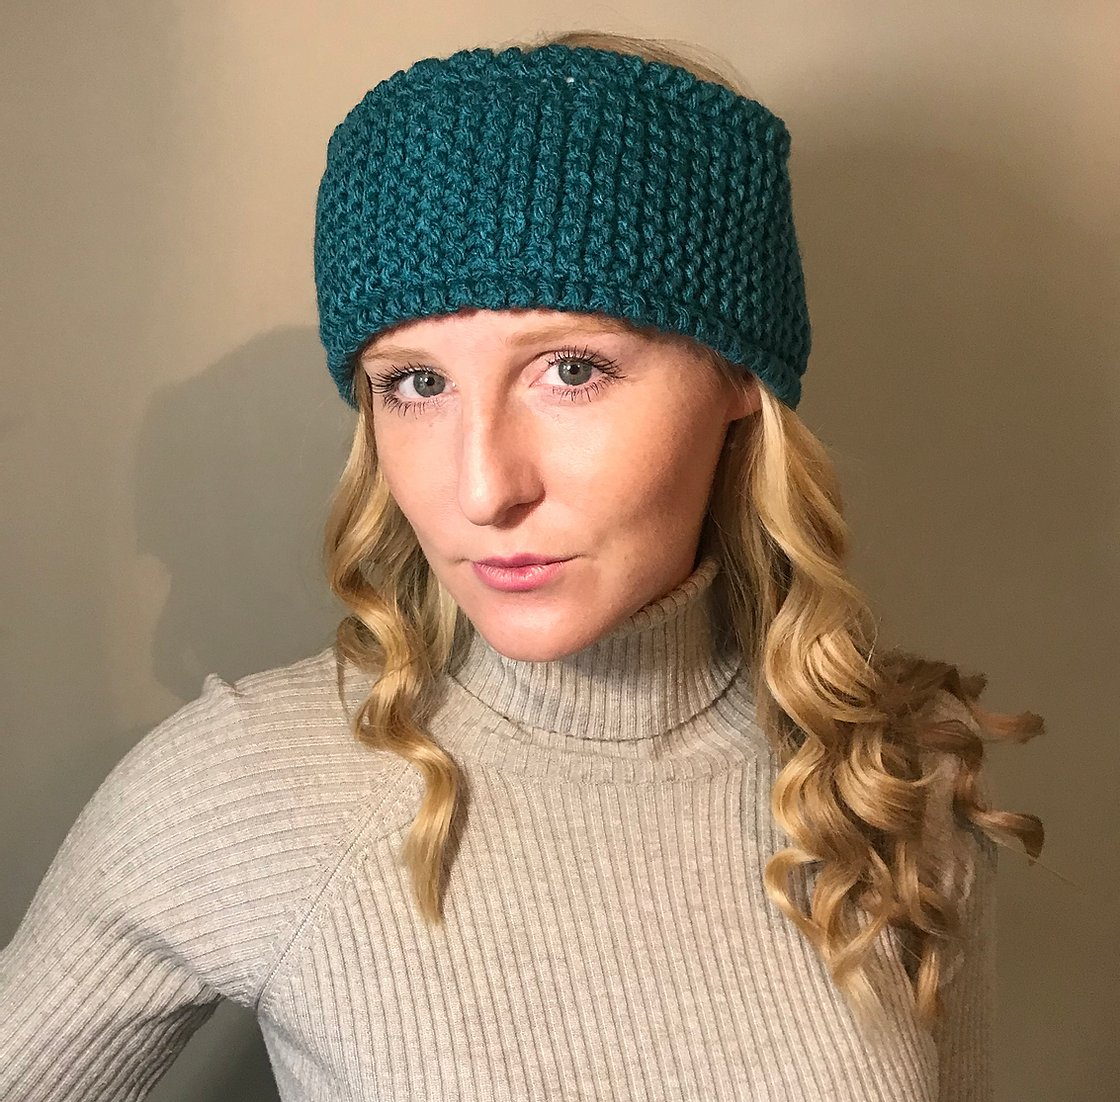 Chunky knitted headband, teal